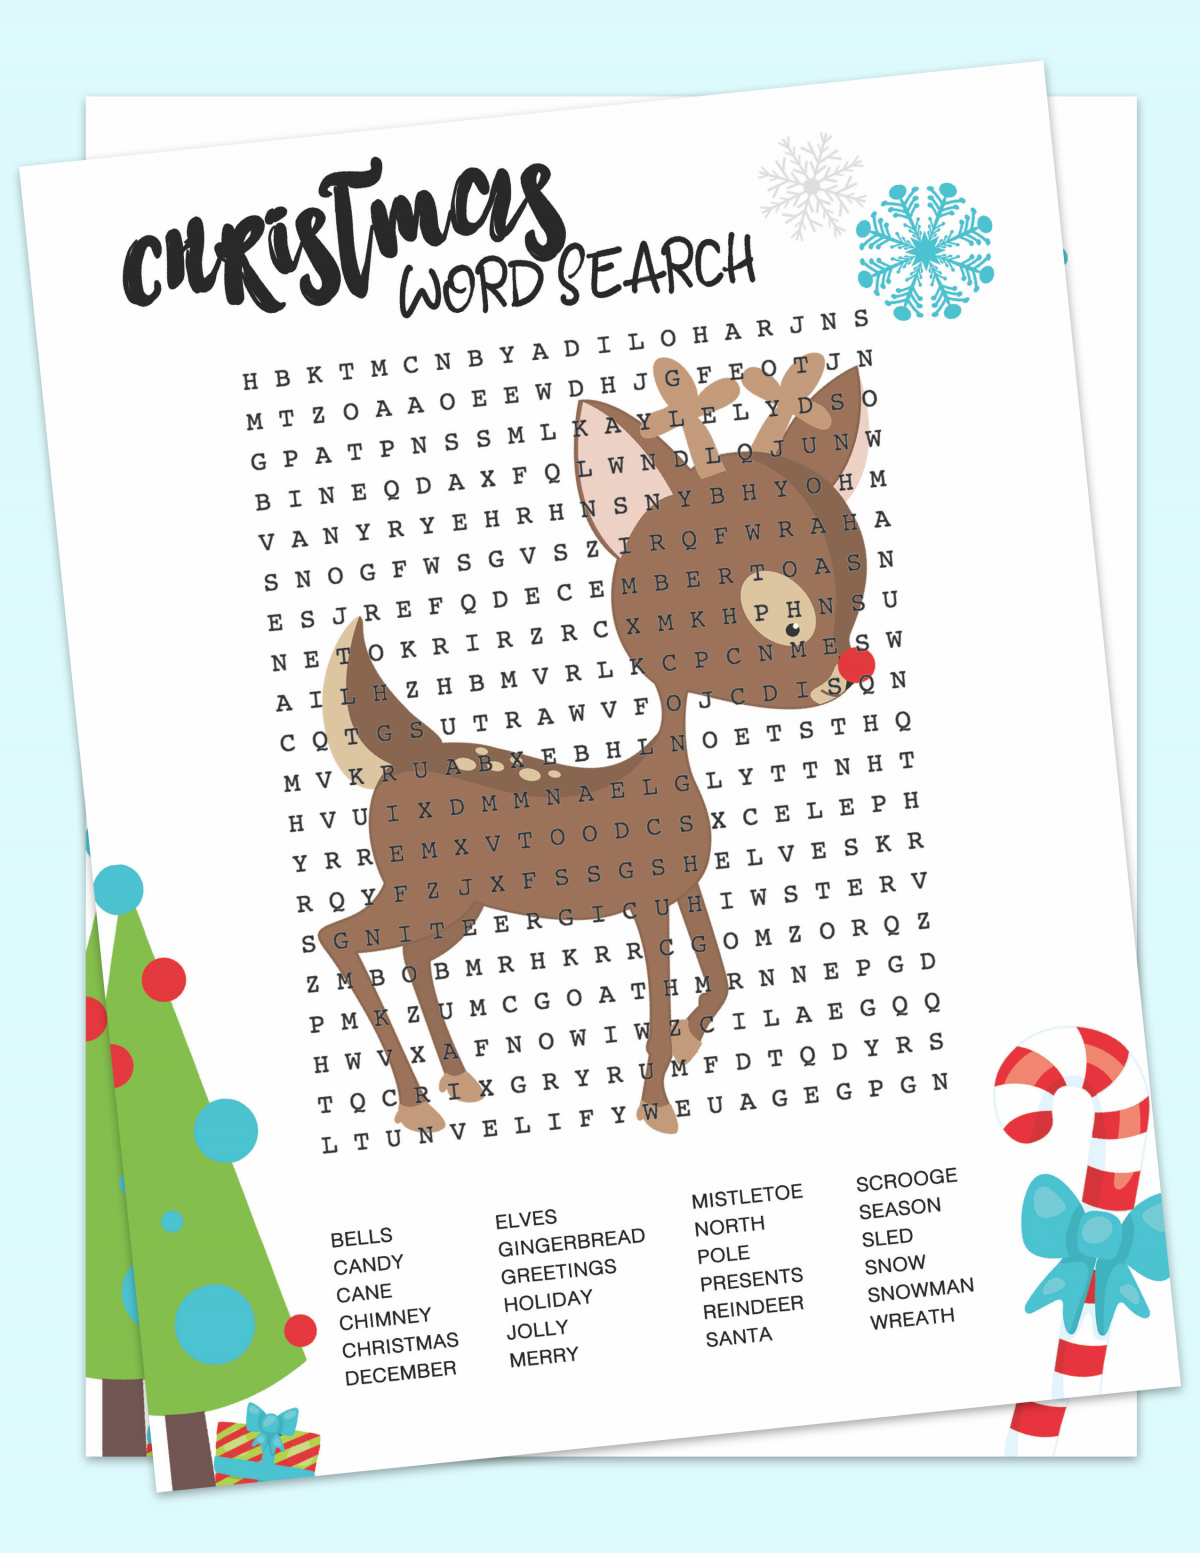 Rudolph Wordserch Free Printable, christmas wordsearch, chrstmas wordsearch printable, Rudolph Wordserch,